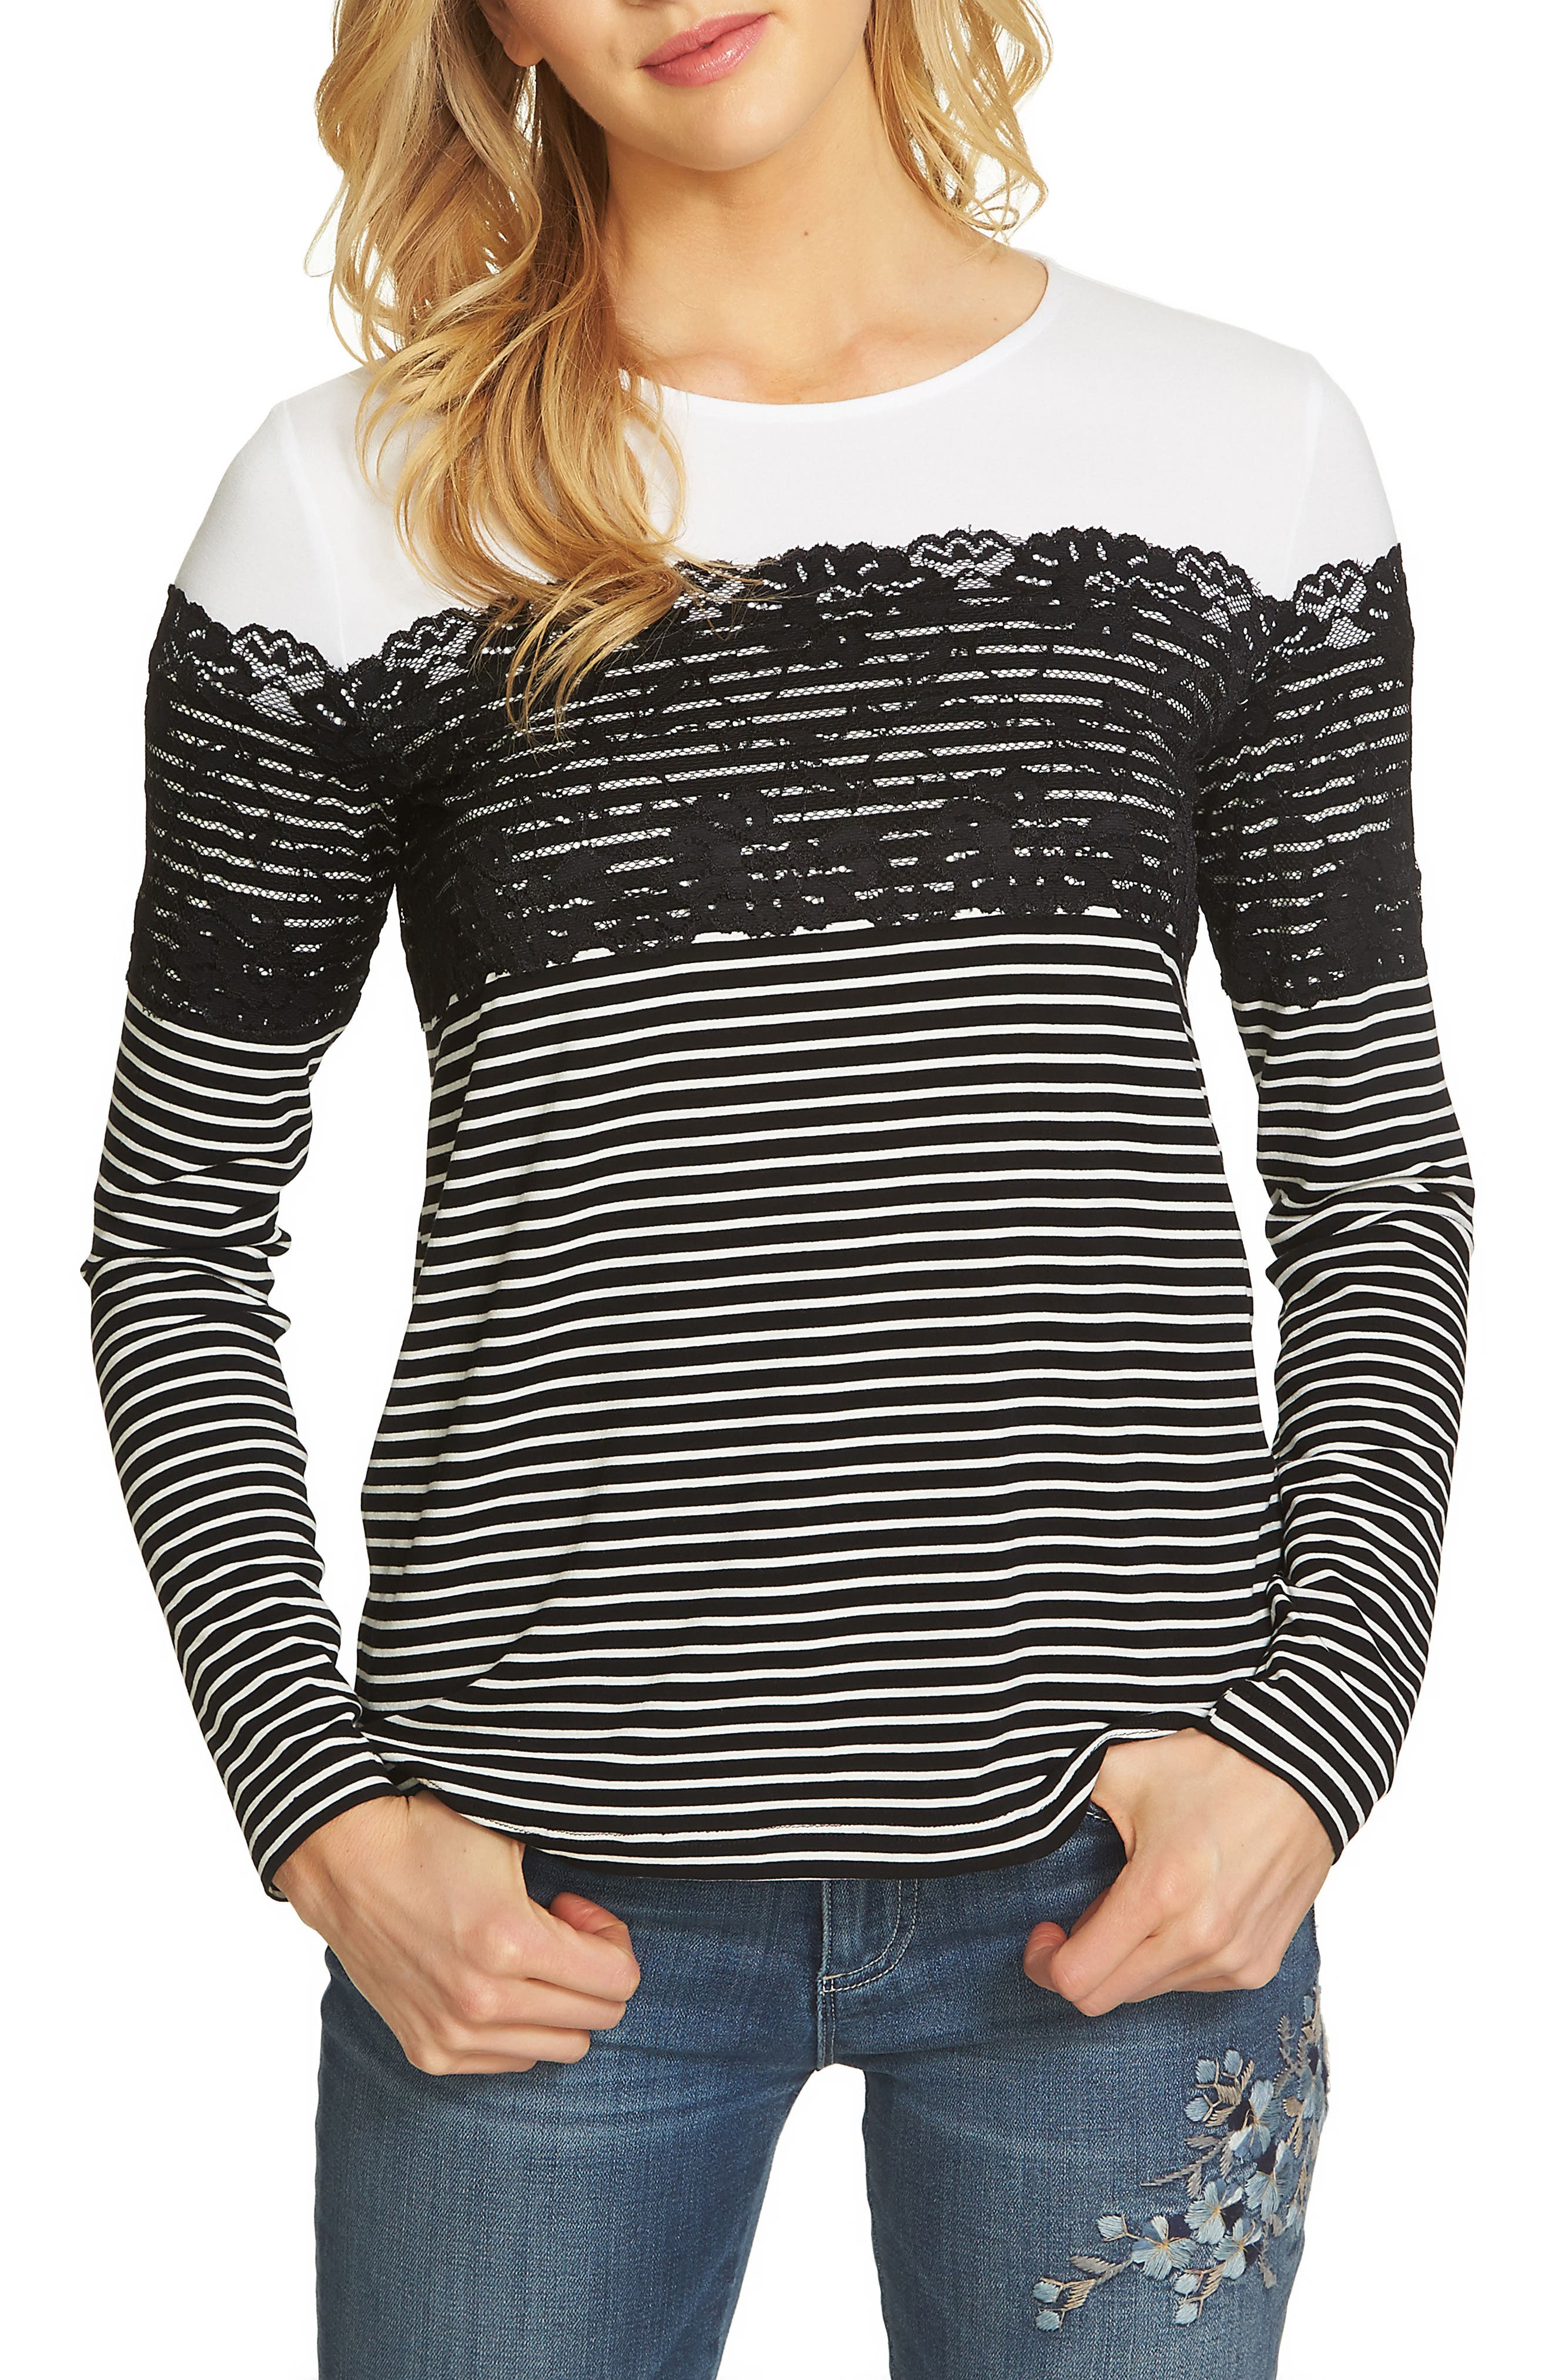 Lacy Striped Top,                             Main thumbnail 1, color,                             Rich Black